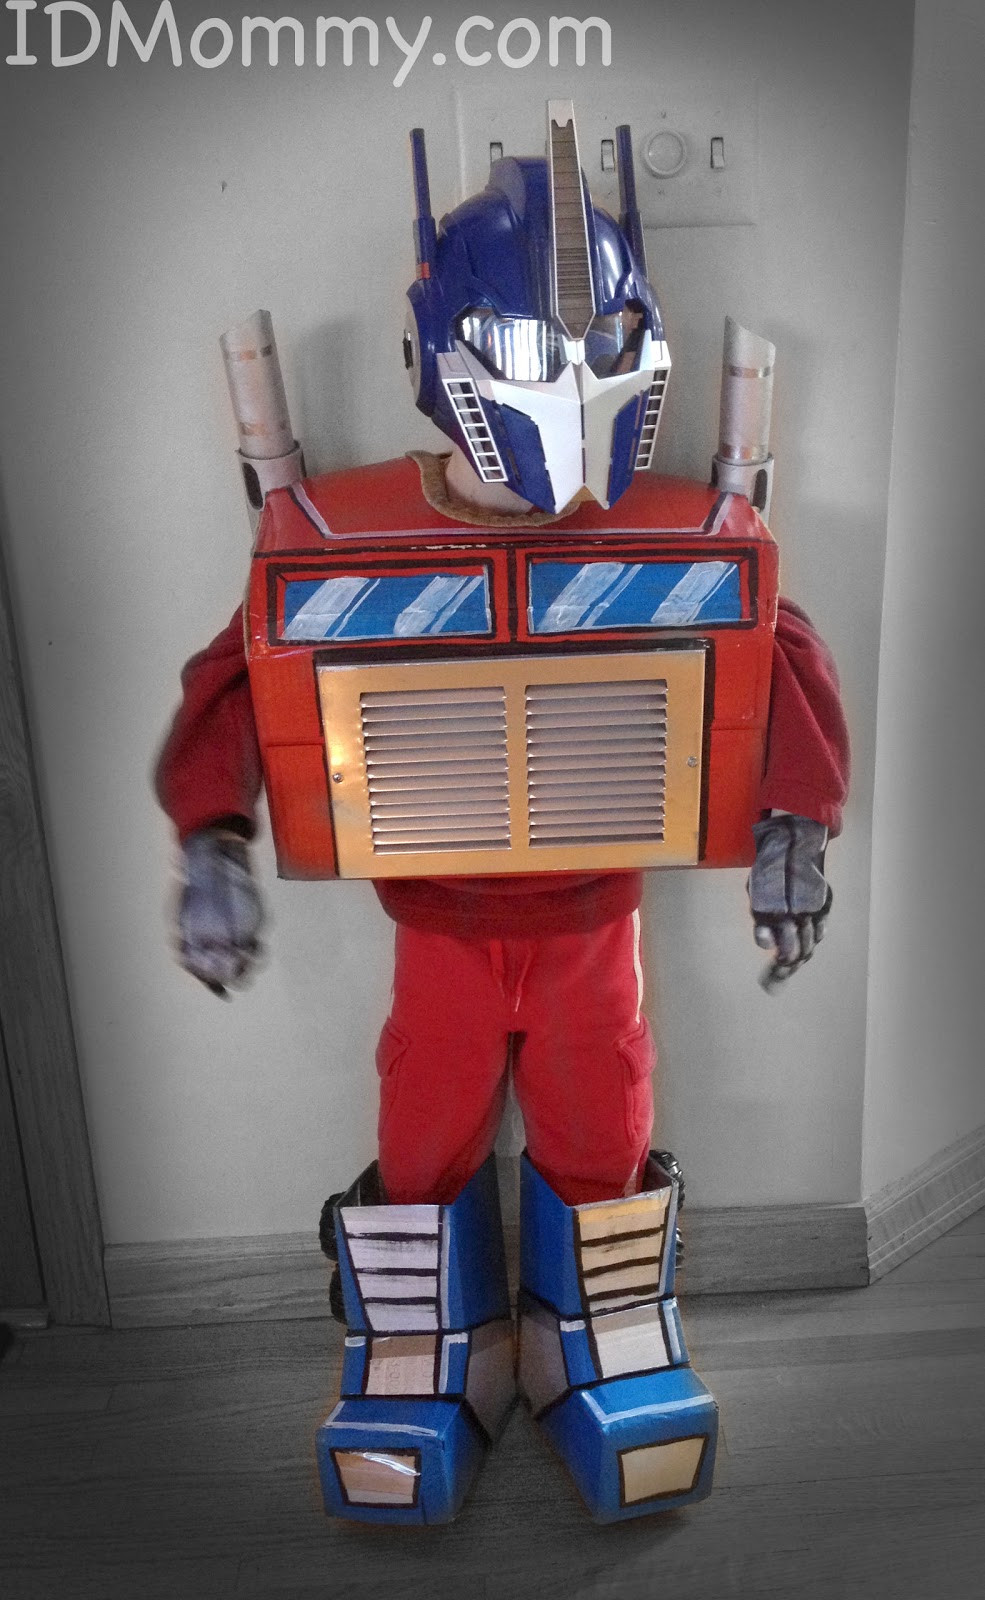 Best ideas about DIY Transformers Costumes . Save or Pin ID Mommy DIY Mickey Mouse and Optimus Prime Transformer Now.